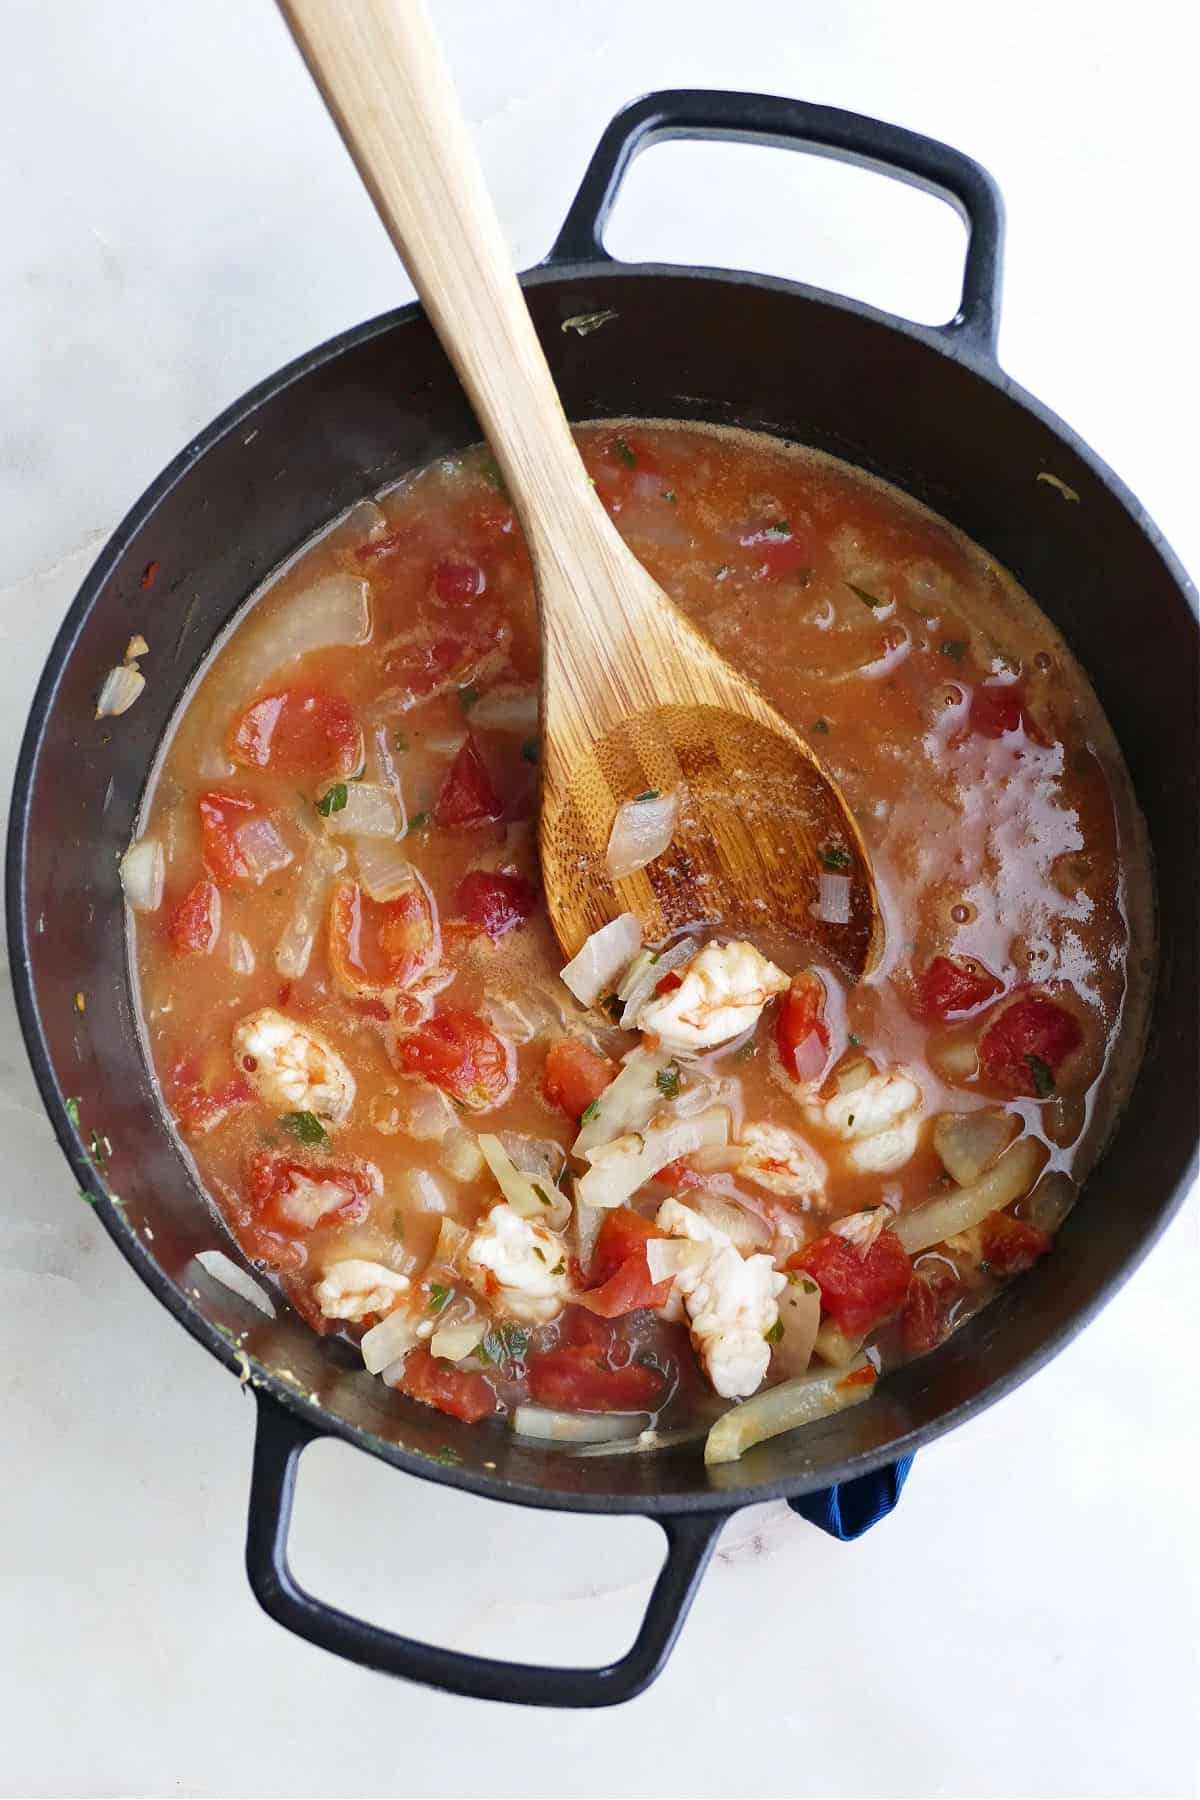 fennel stew with tomatoes and shrimp in a black pot with a wooden spon